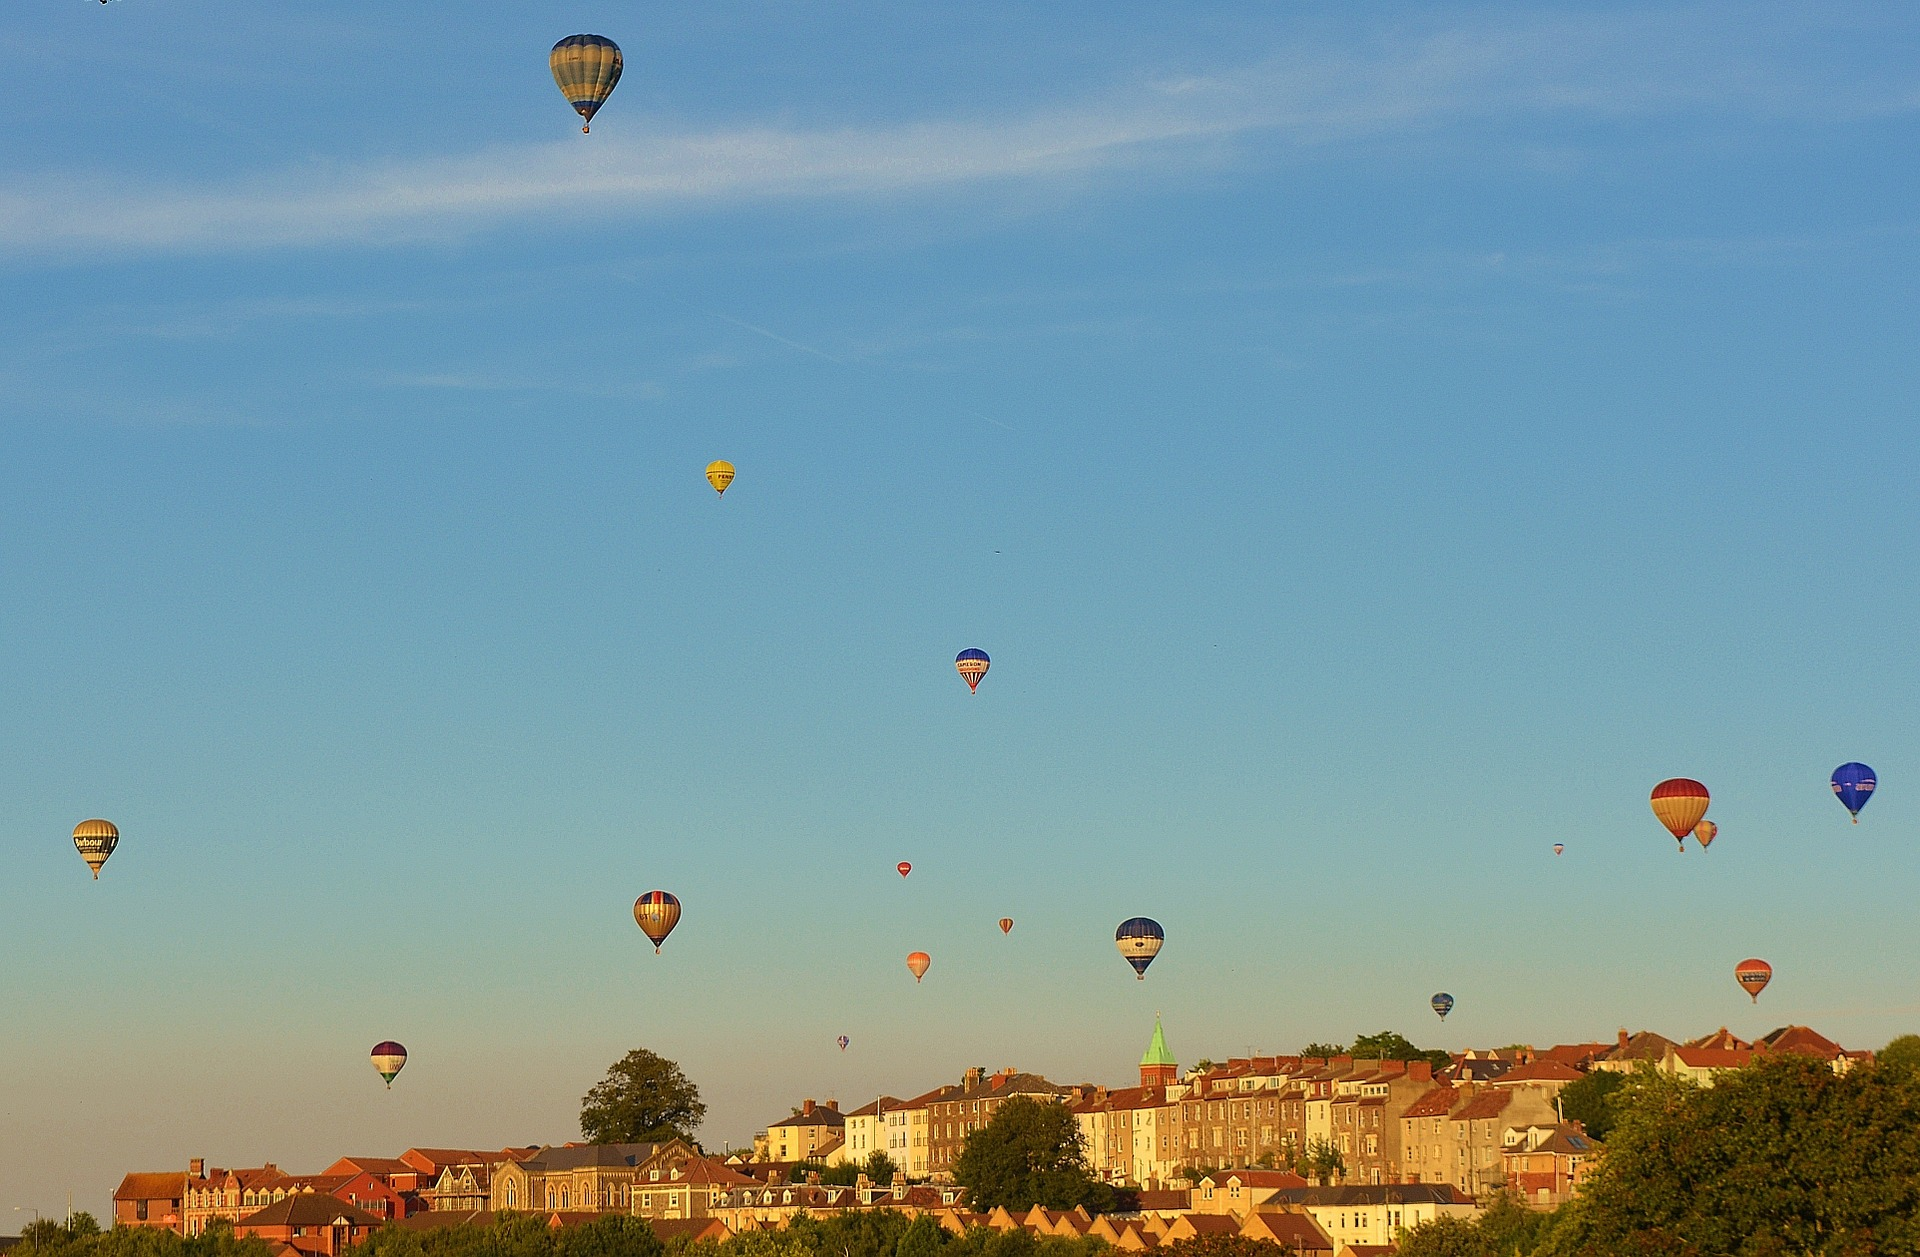 Hot air balloons in the sky over Bristol's iconic city scape